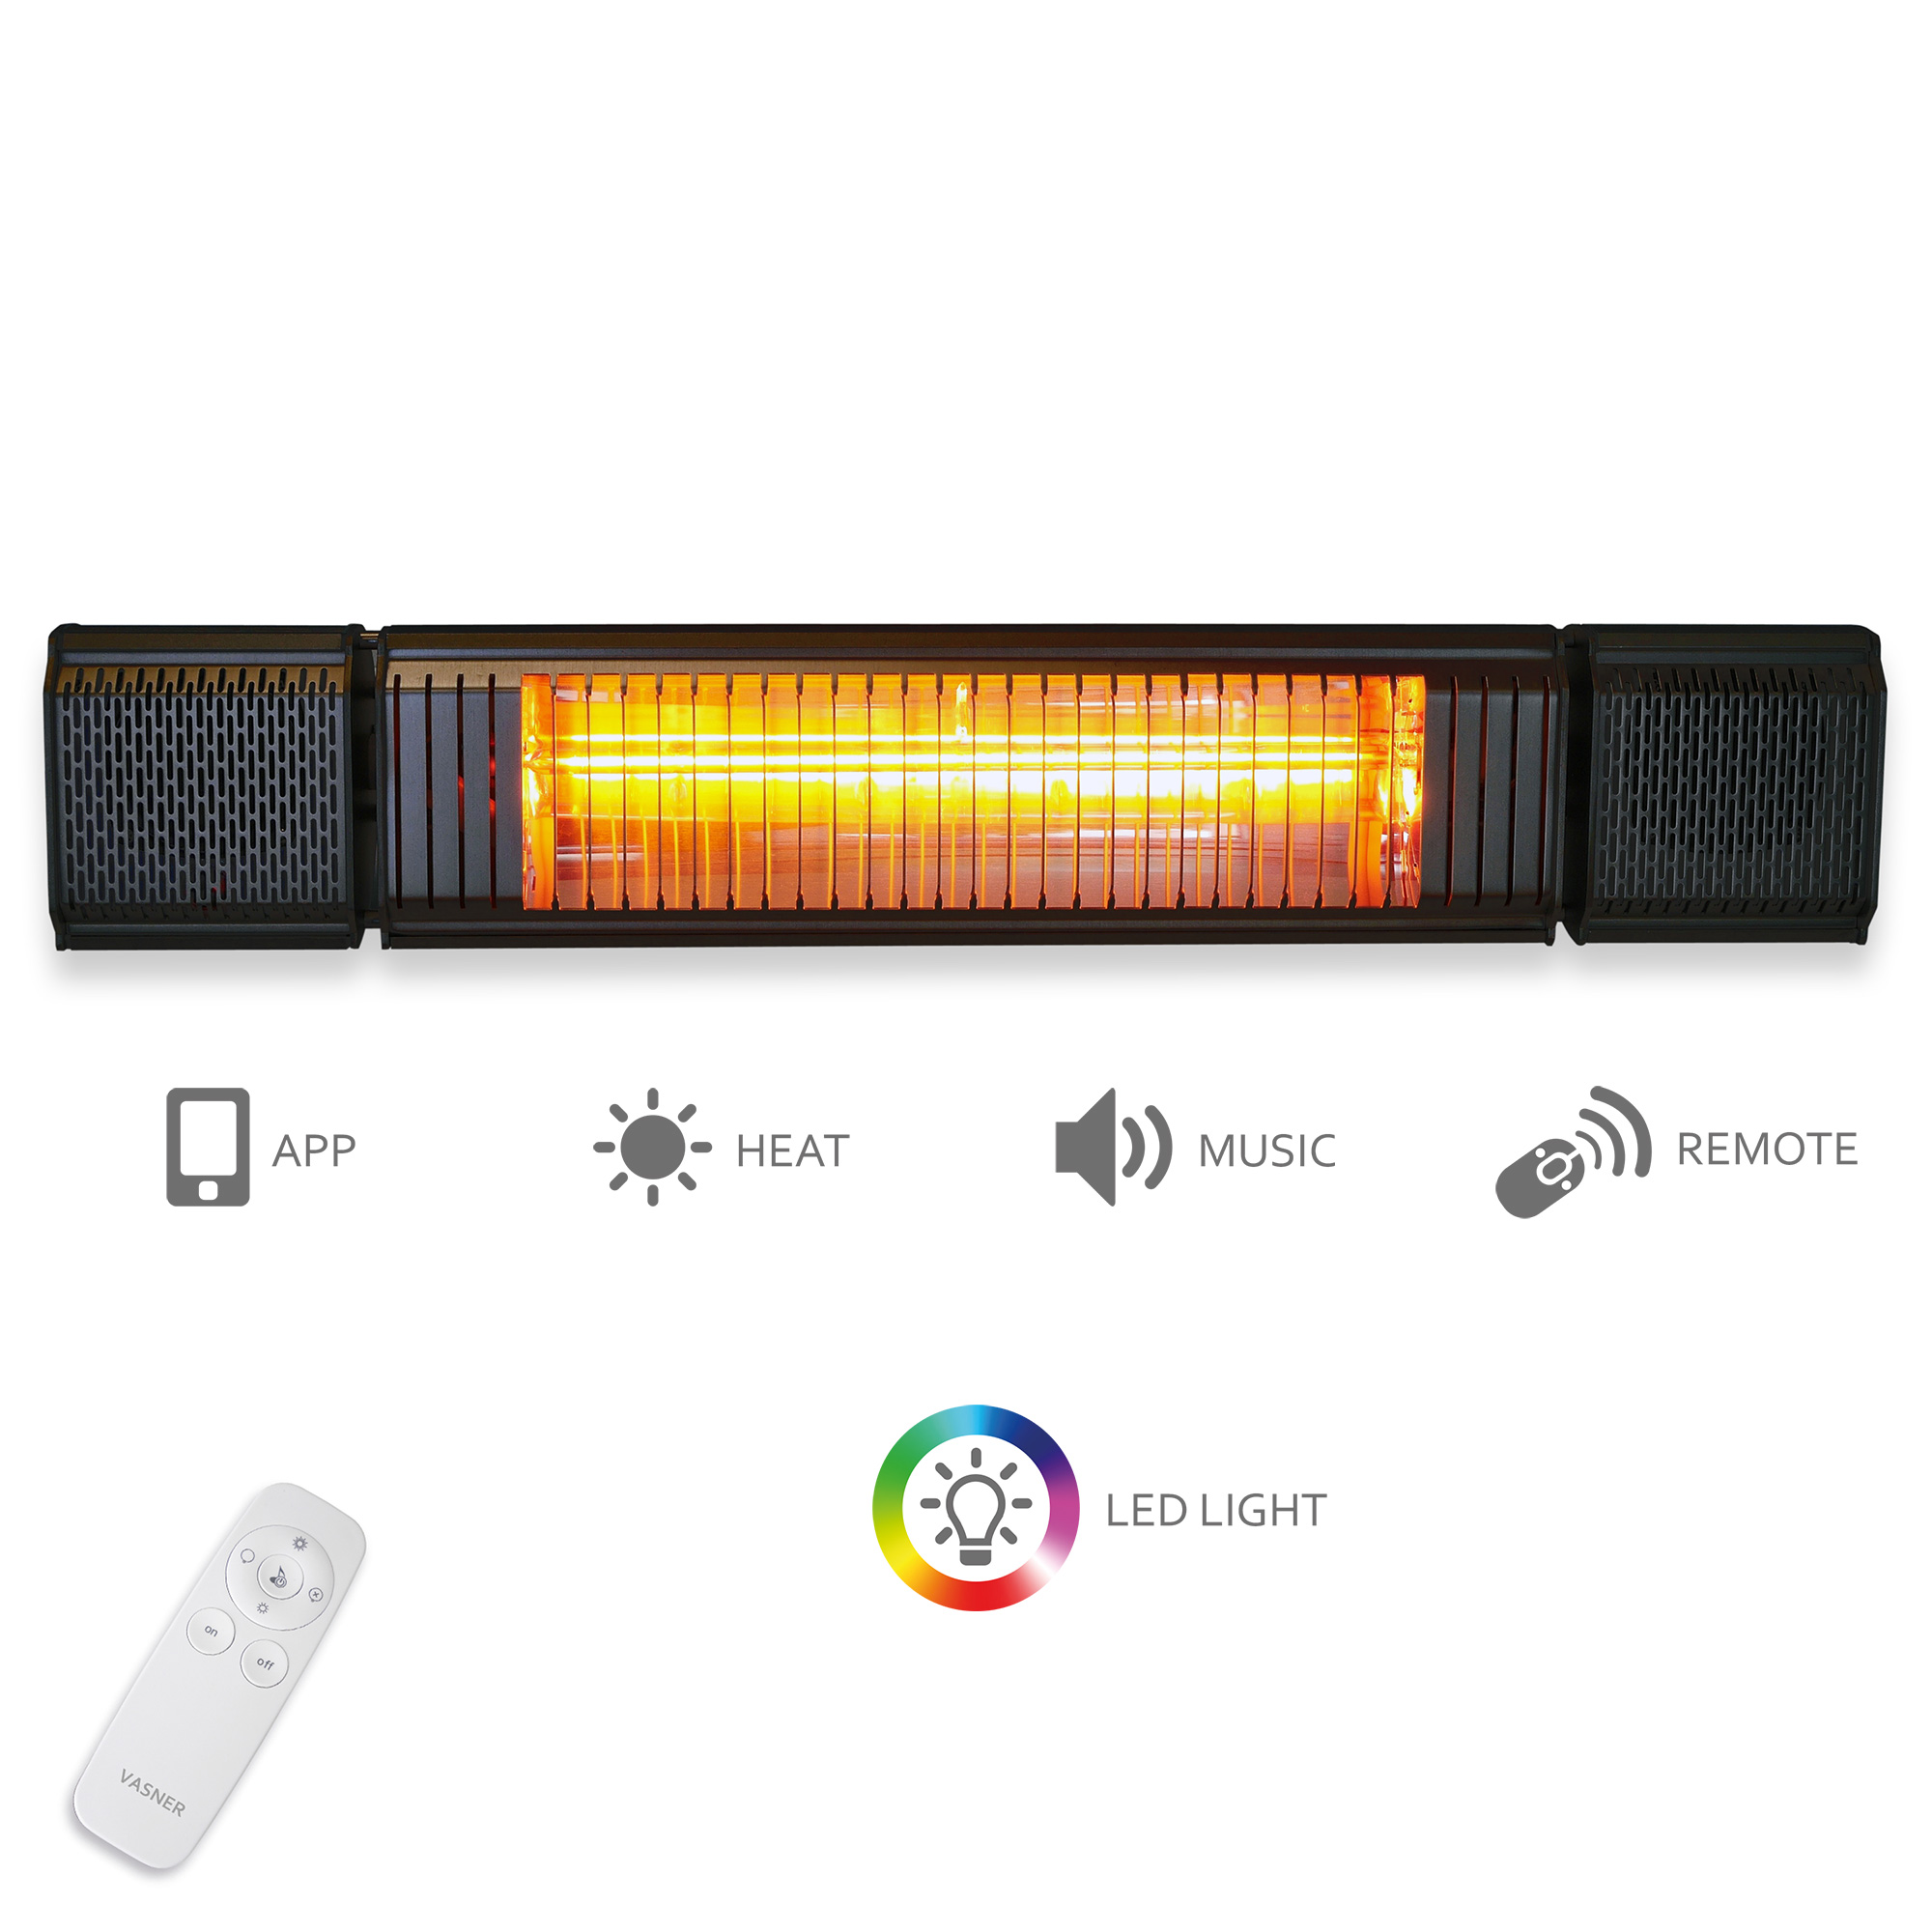 Patio-heater-Appino-BEATZZ-sound-system-music-reactive-LED-light